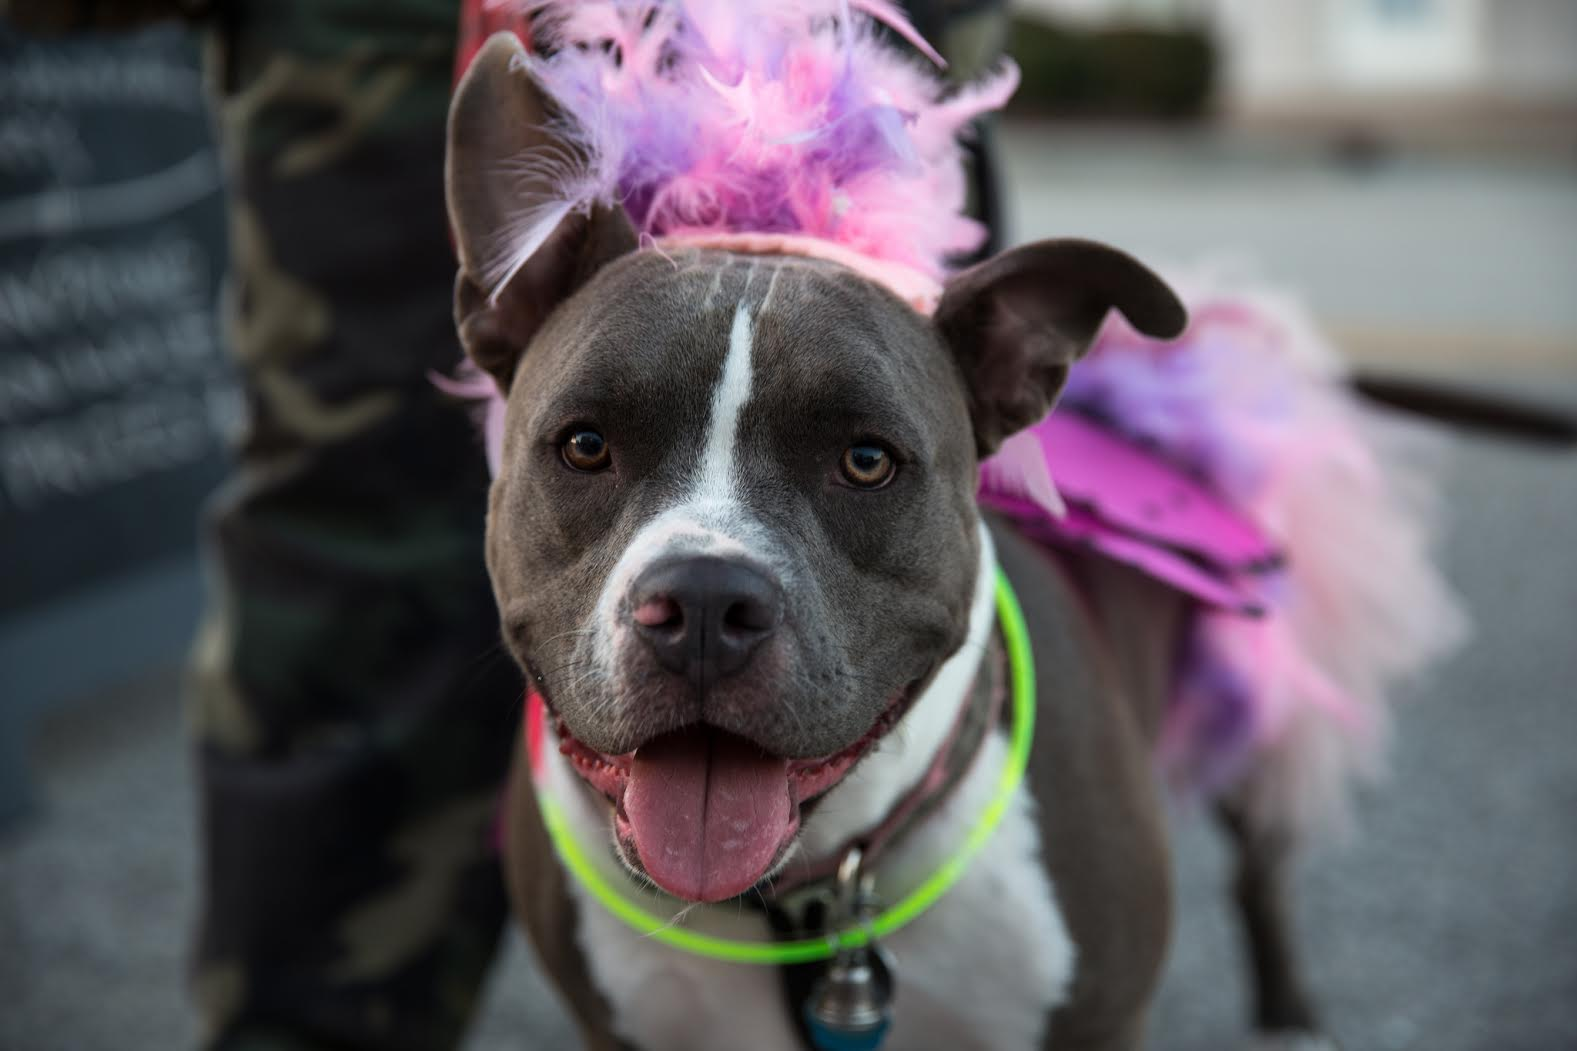 Pitbull in pink tutu fundraiser for dogs portland